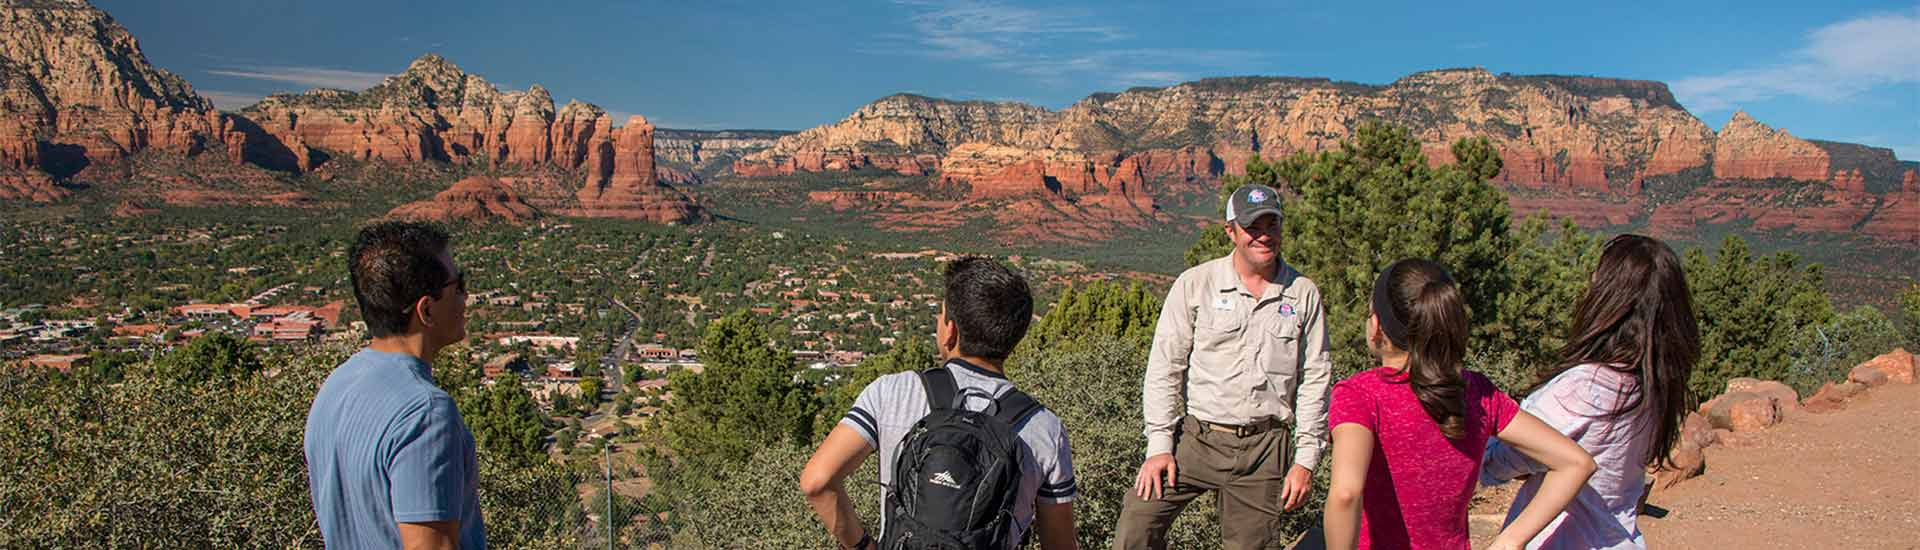 Pink Jeep guide and family on Sedona 360 Tour overlooking the town and red rocks from Airport Mesa Overlook